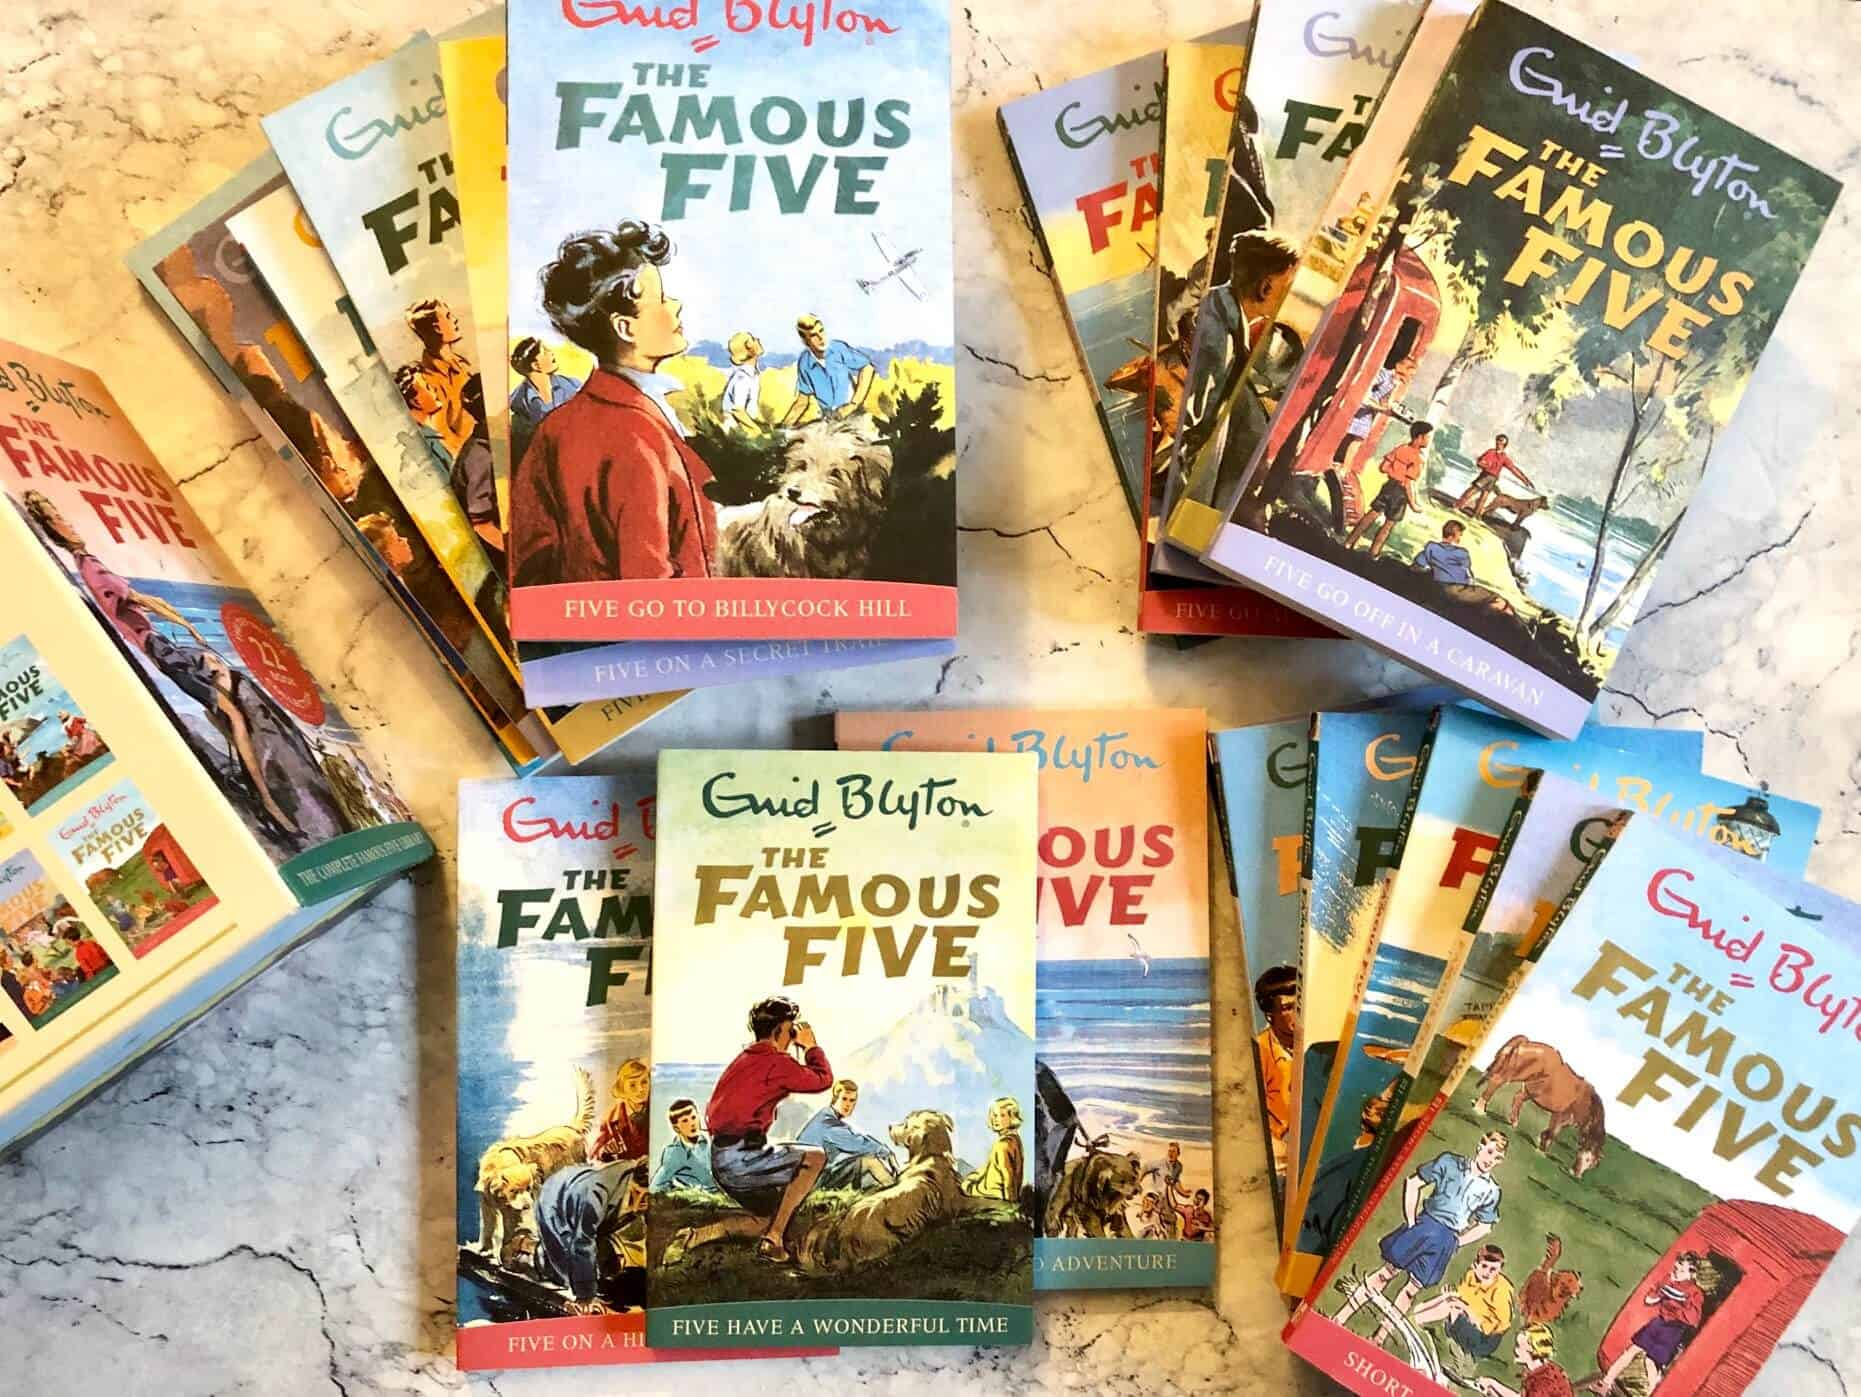 Enid Blyton Books - The Famous Five collection